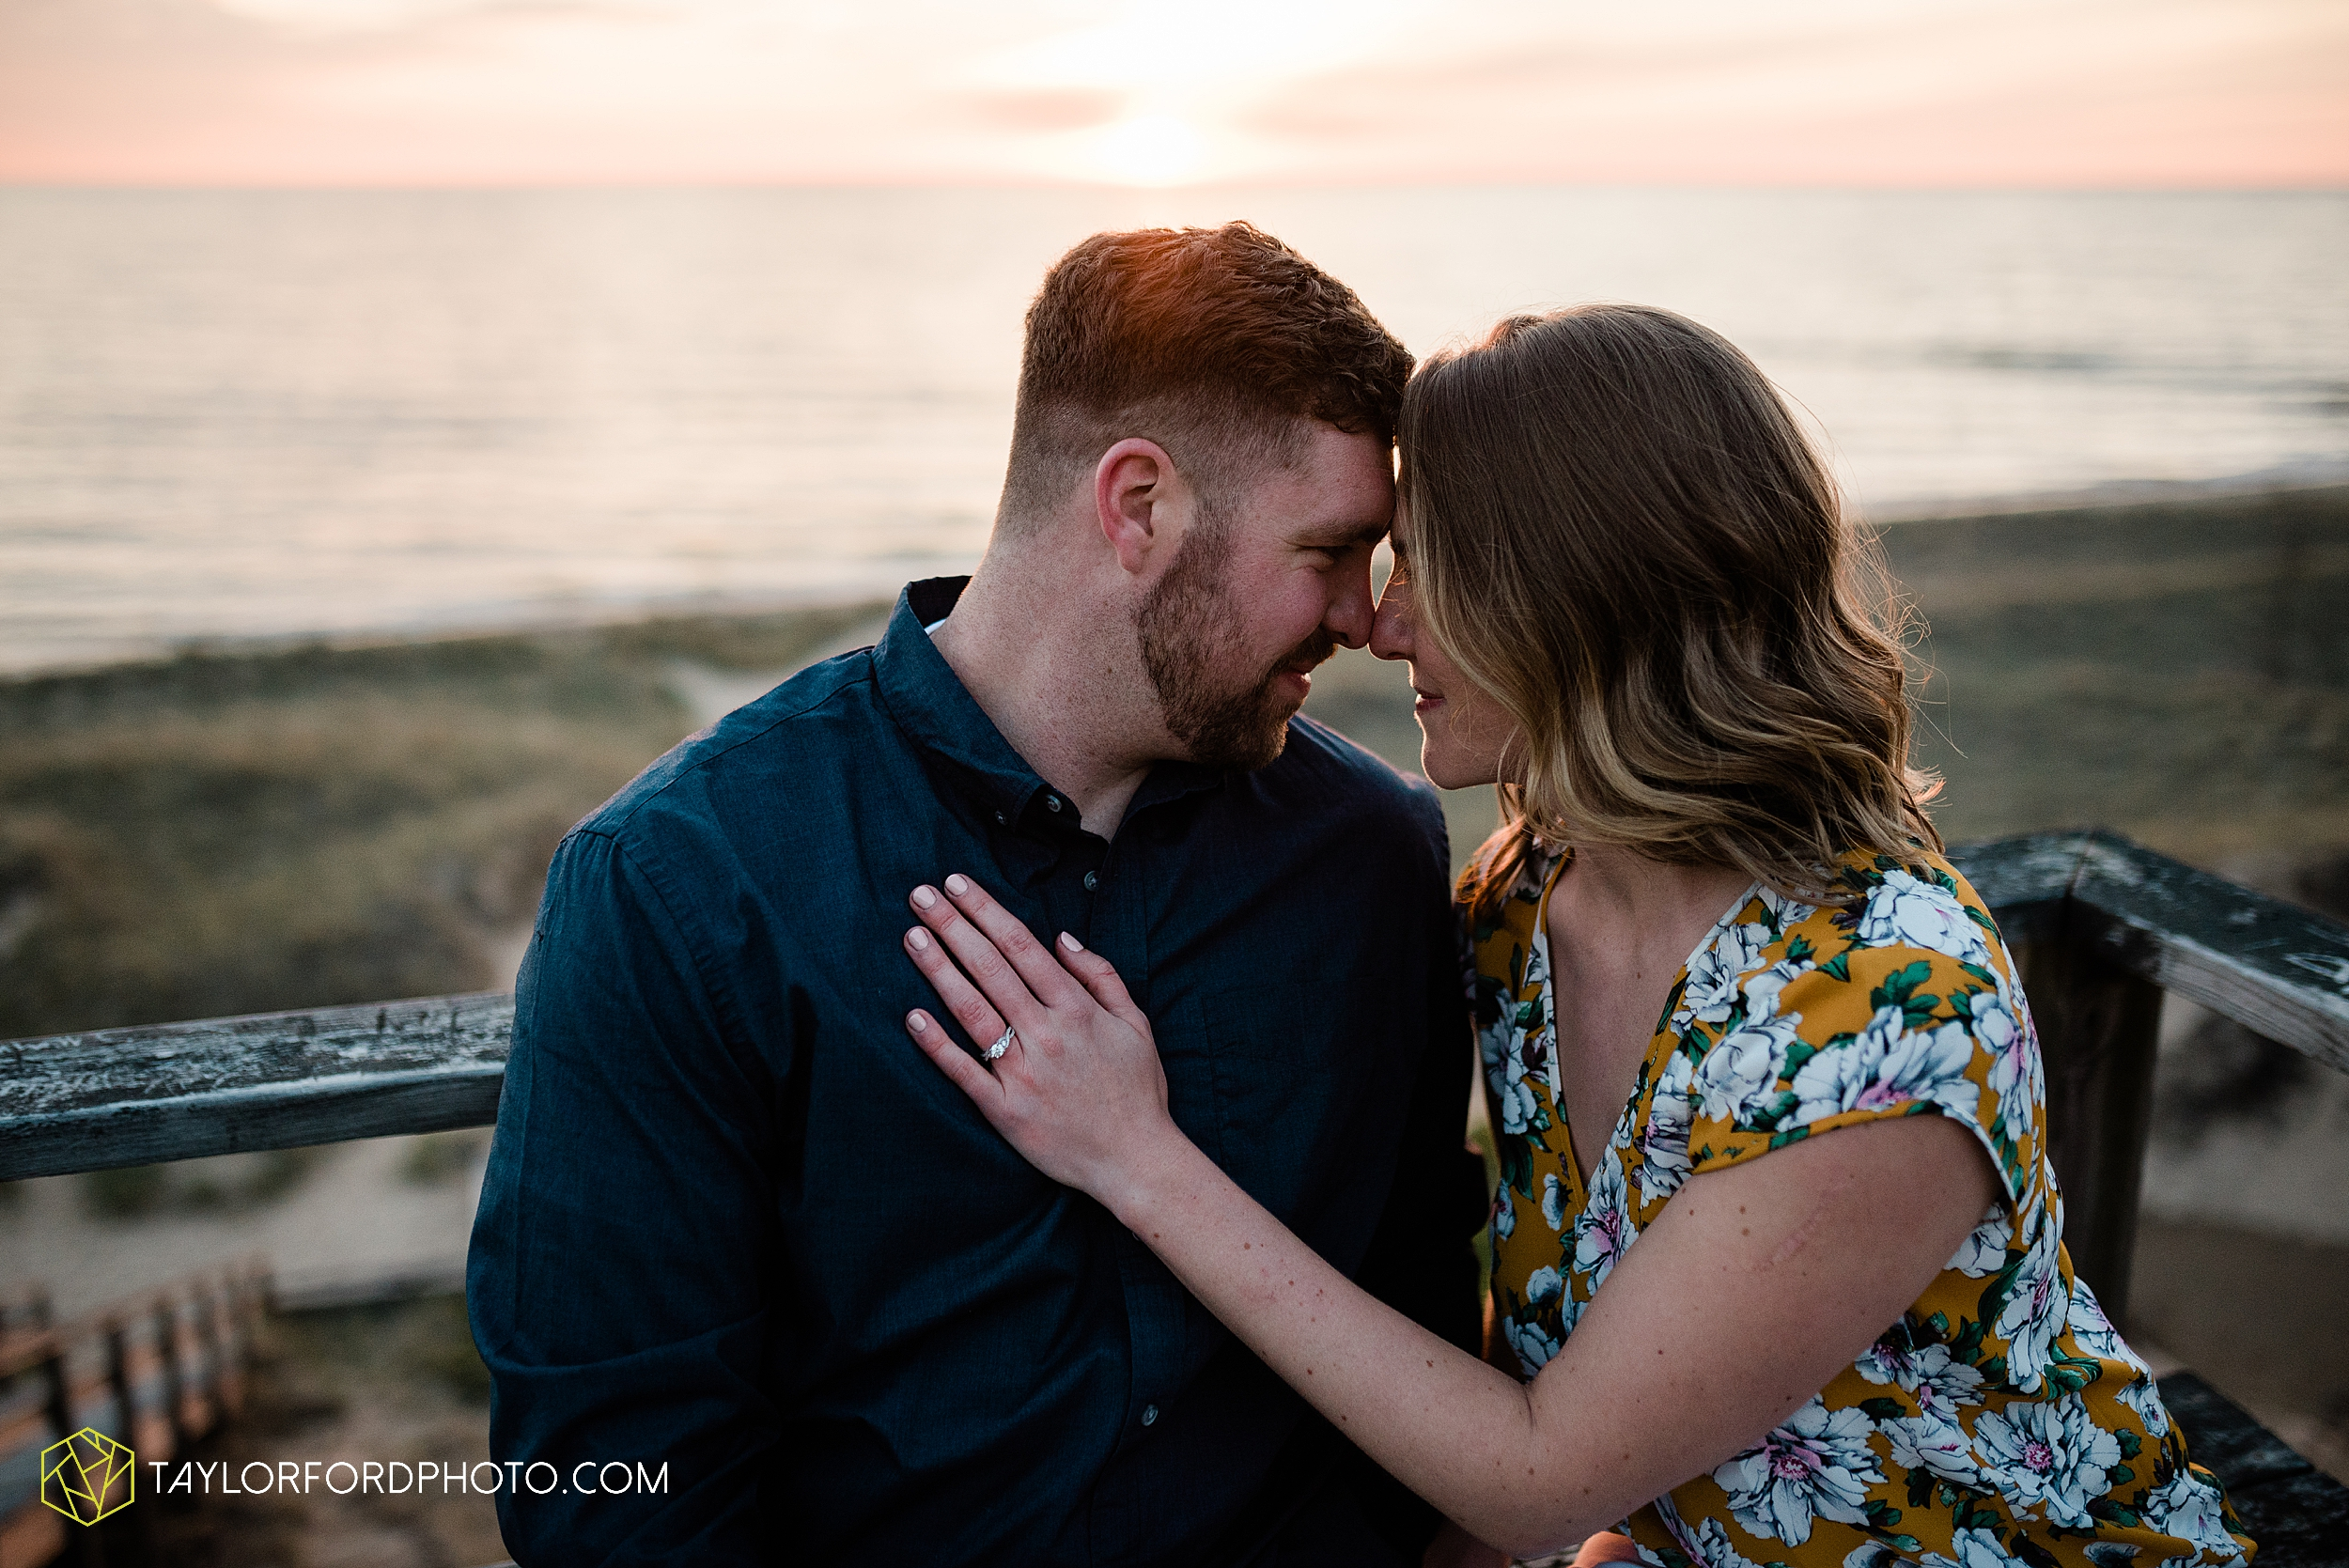 holland-michigan-tulip-time-downtown-hope-college-riverside-park-laketown-beach-lake-michigan-engagement-photographer-photography-taylor-ford-hirschy-photographer_2630.jpg